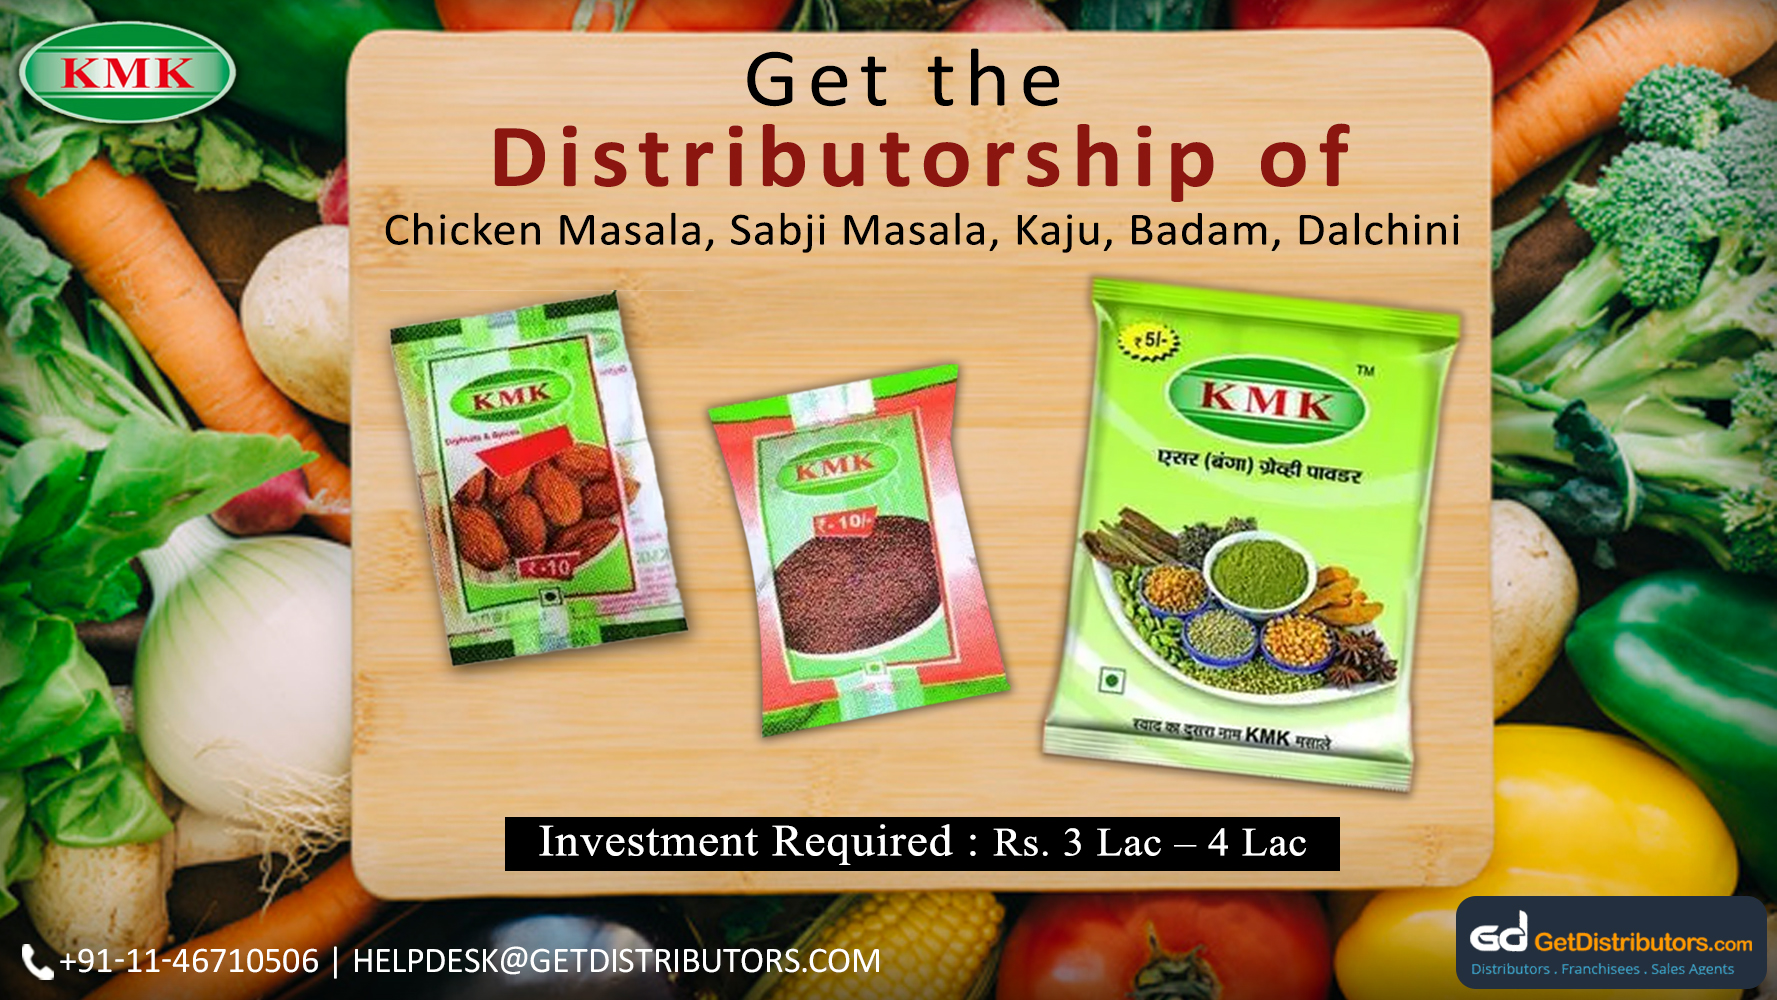 Offering Superior Quality Spices And Dry Fruits At A Pocket-Friendly Price